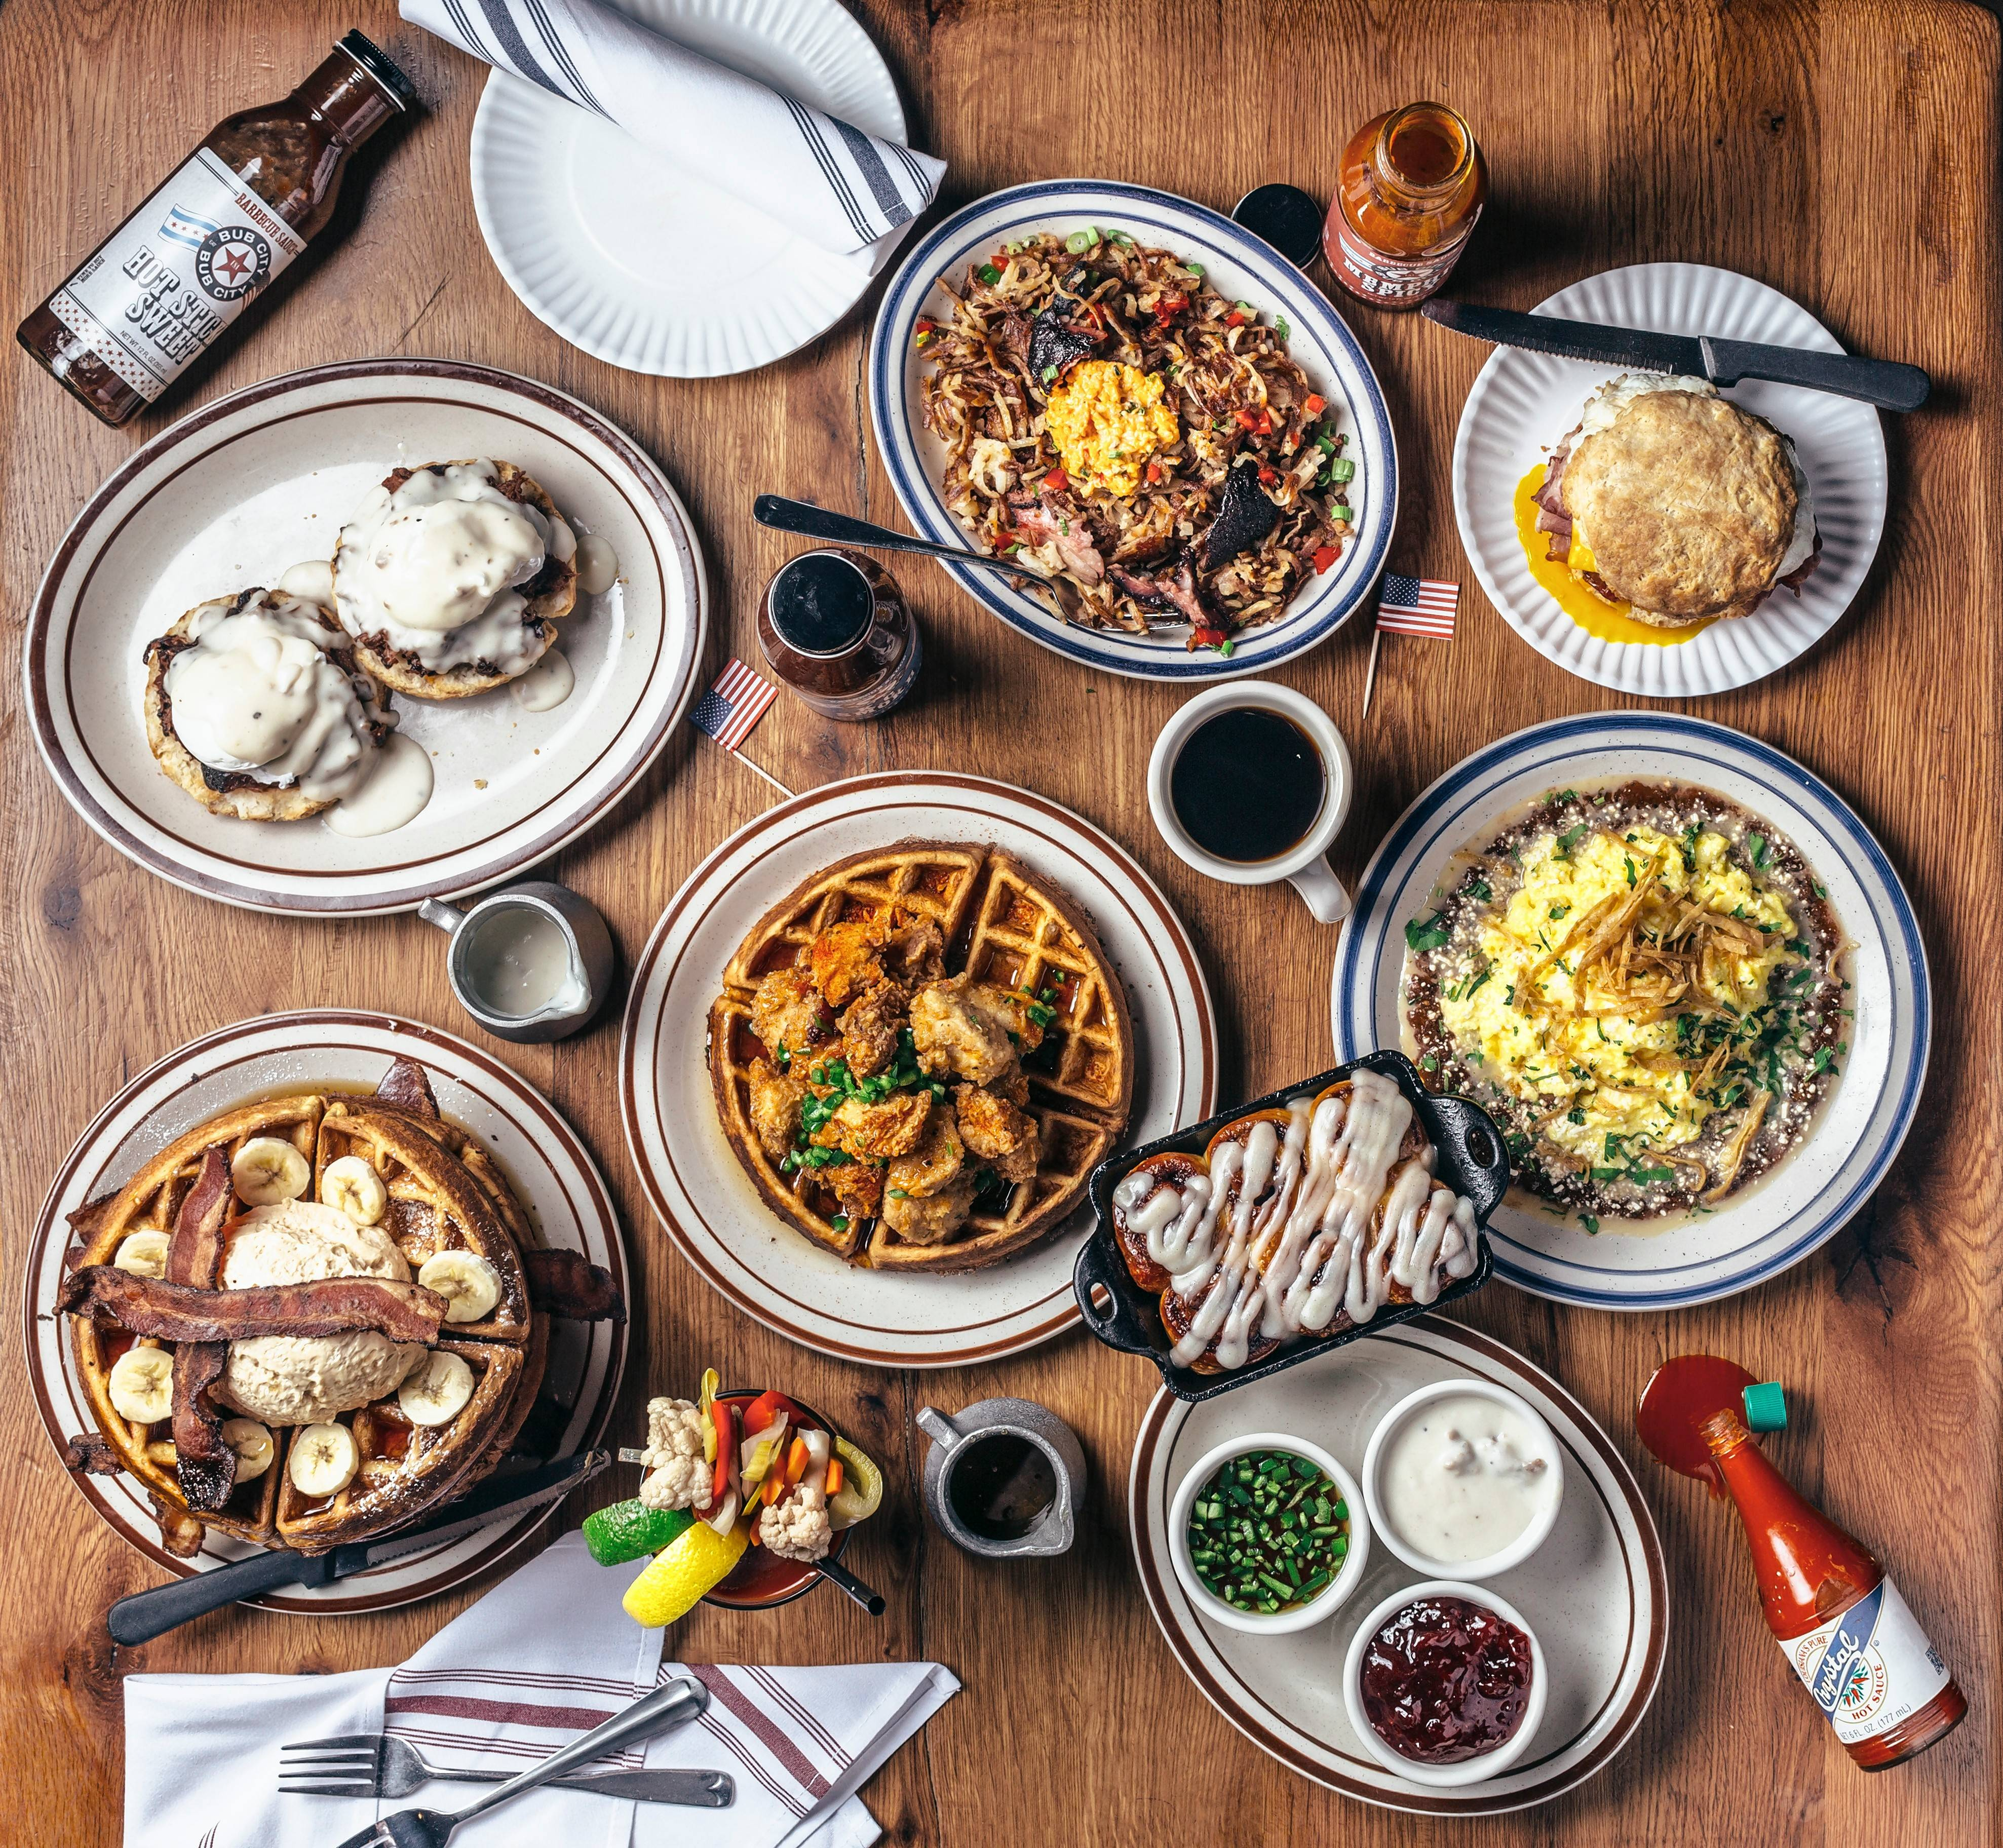 Kick off New Year's Eve and New Year's Day with a brunch serving Southern staples and a DIY Bloody Mary Bar at Bub City Rosemont.